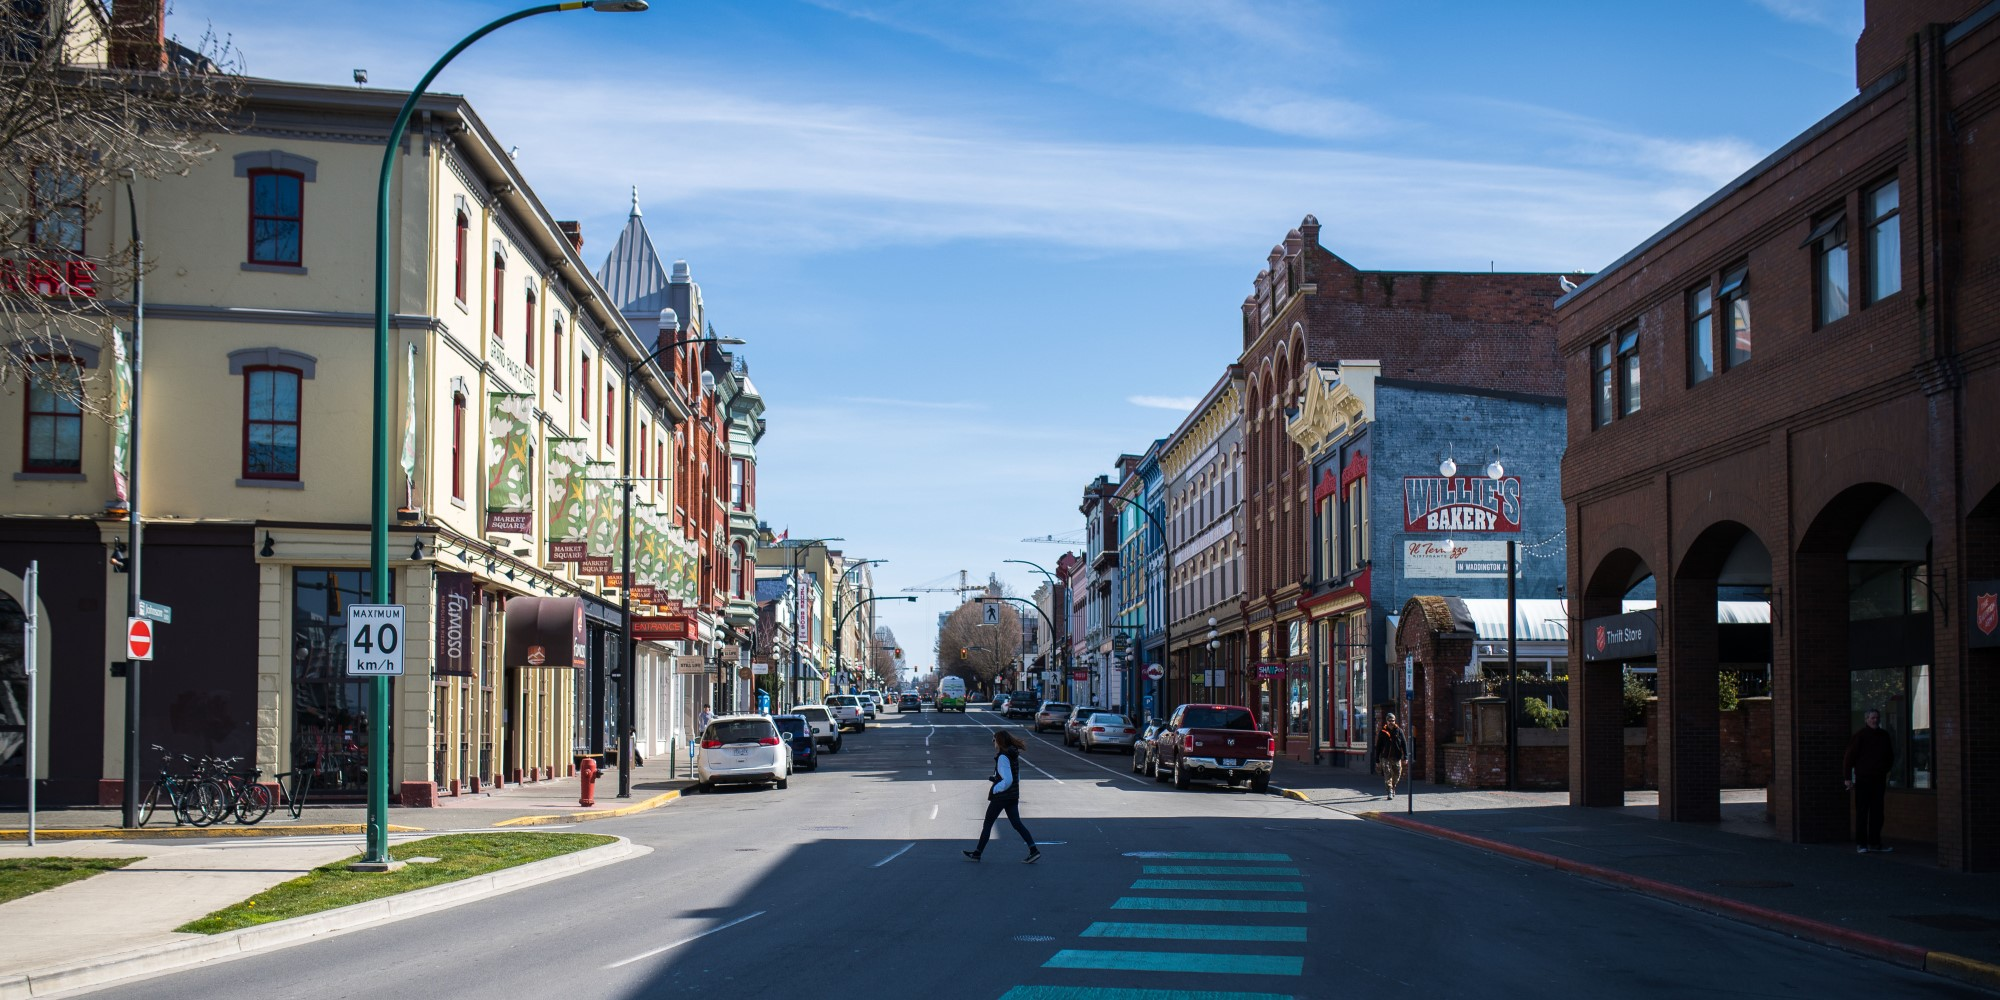 Victoria Proposes Closing Streets to Offer More Social Distancing